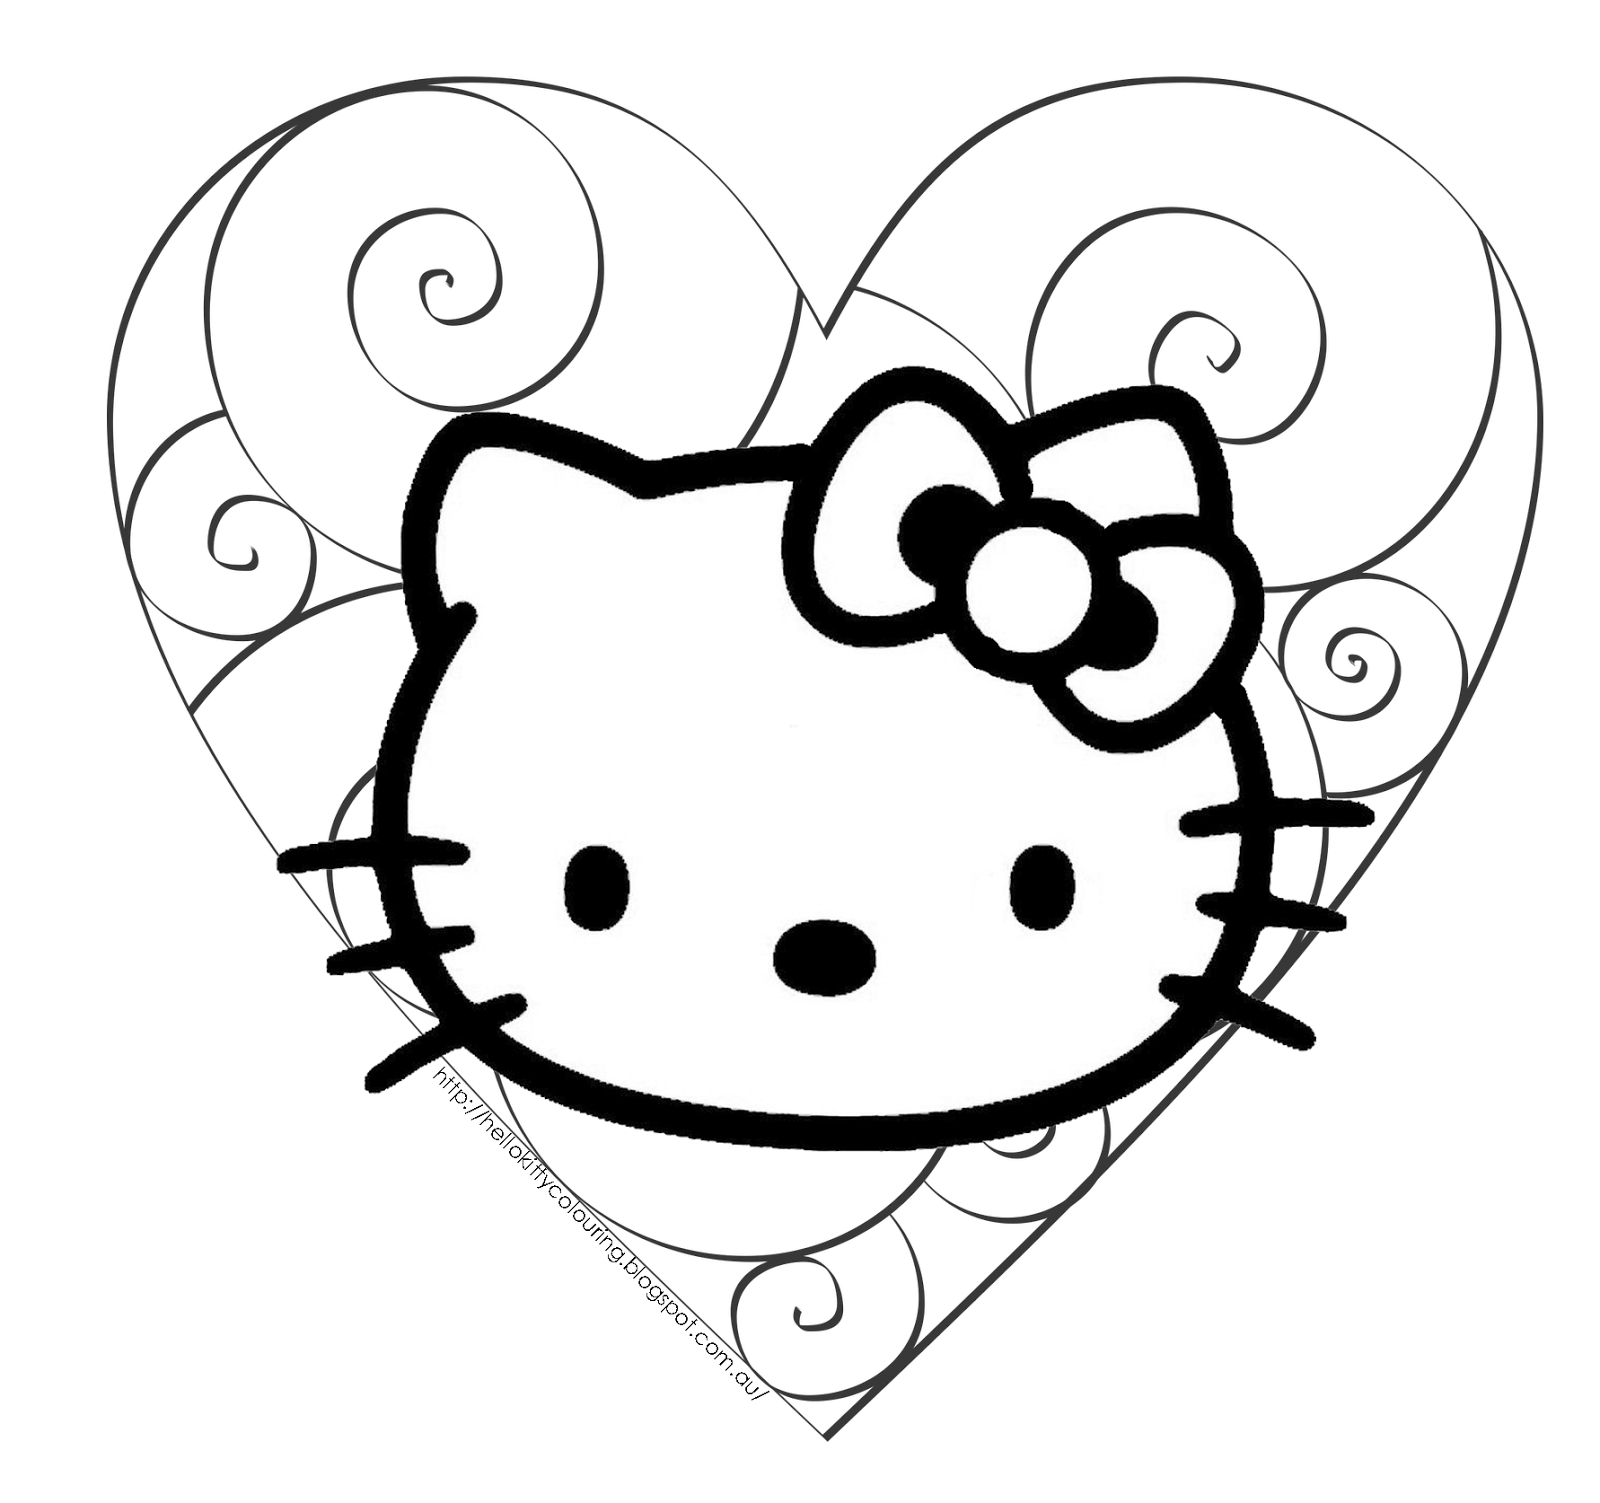 Ausmalbilder Hello Kitty Delfin : Share I Think My Favorite Coloring Page Here Is The One Of Hello